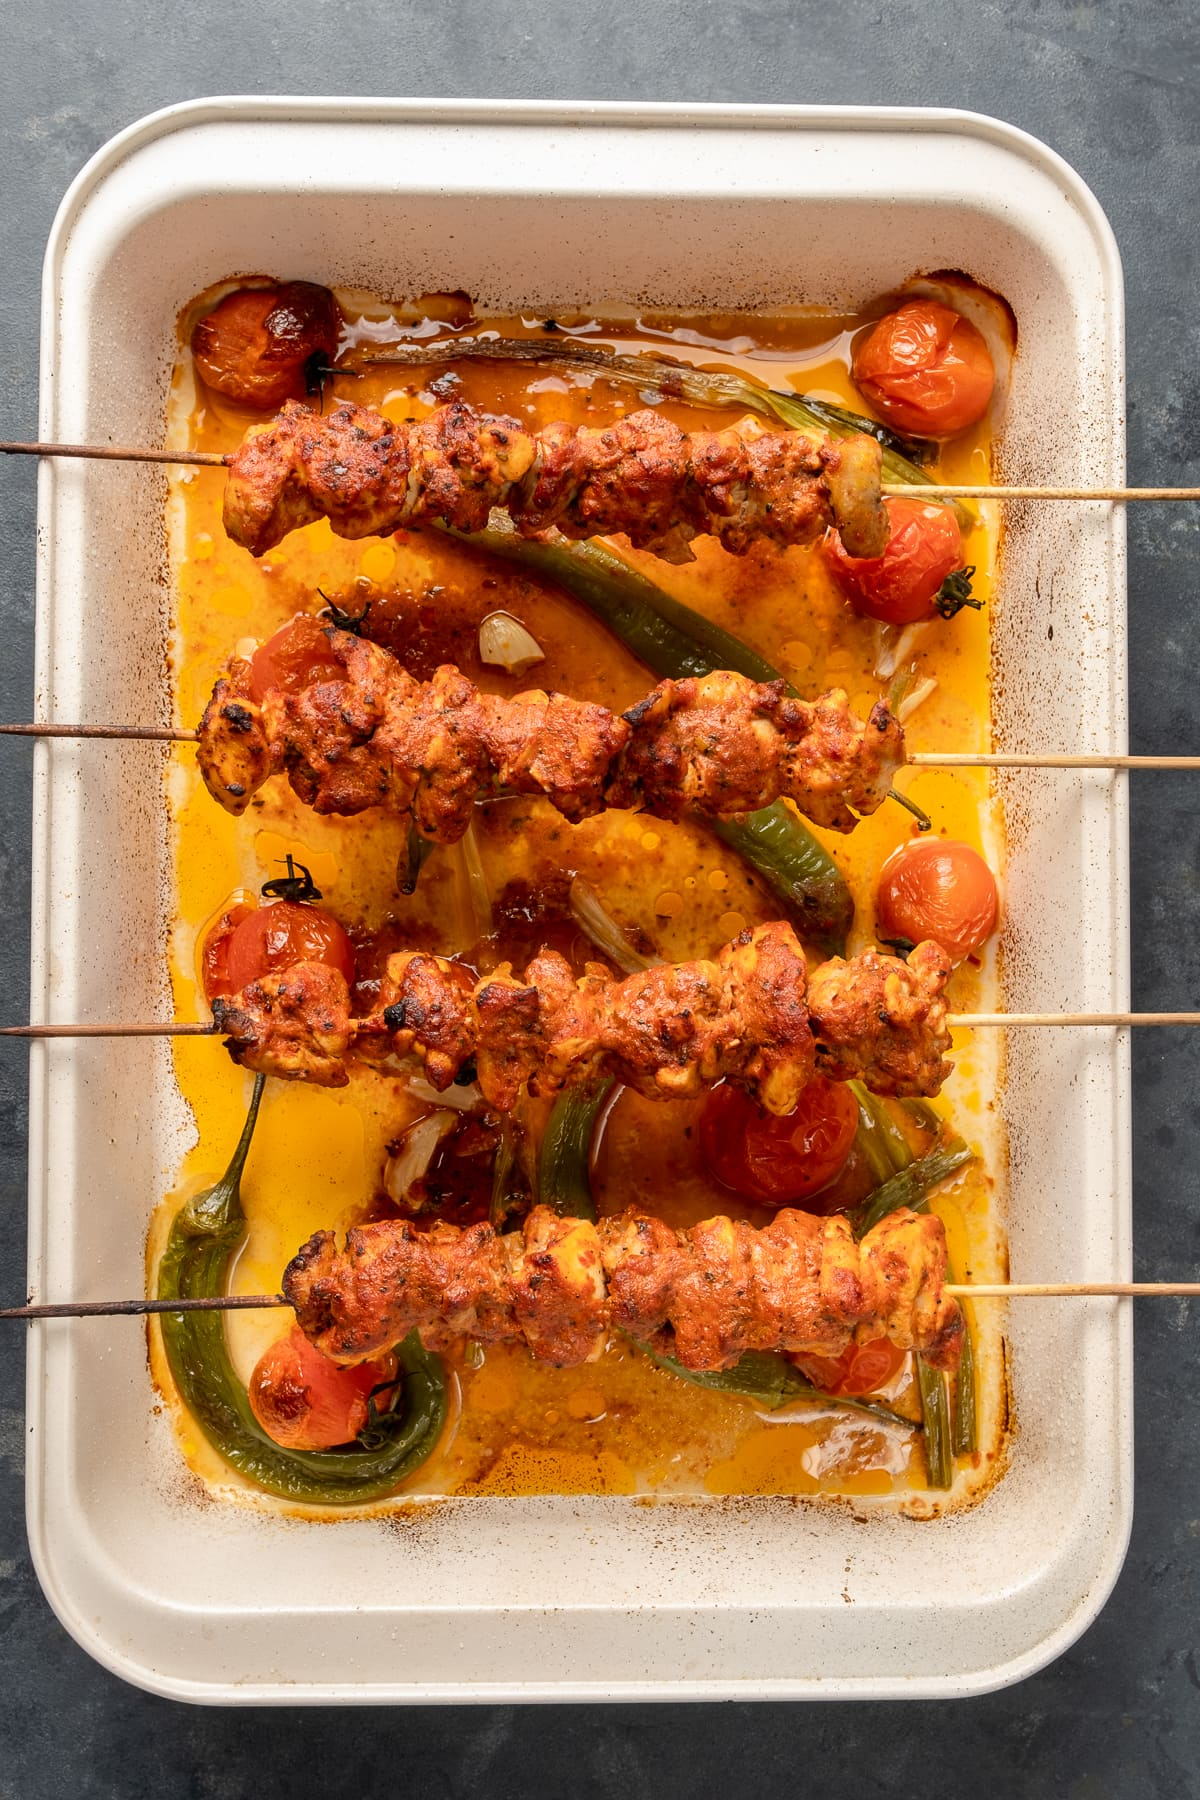 Chicken kabobs baked in oven on the edges of a rectangular baking pan, tomatoes, green peppers and green onions are in the pan.